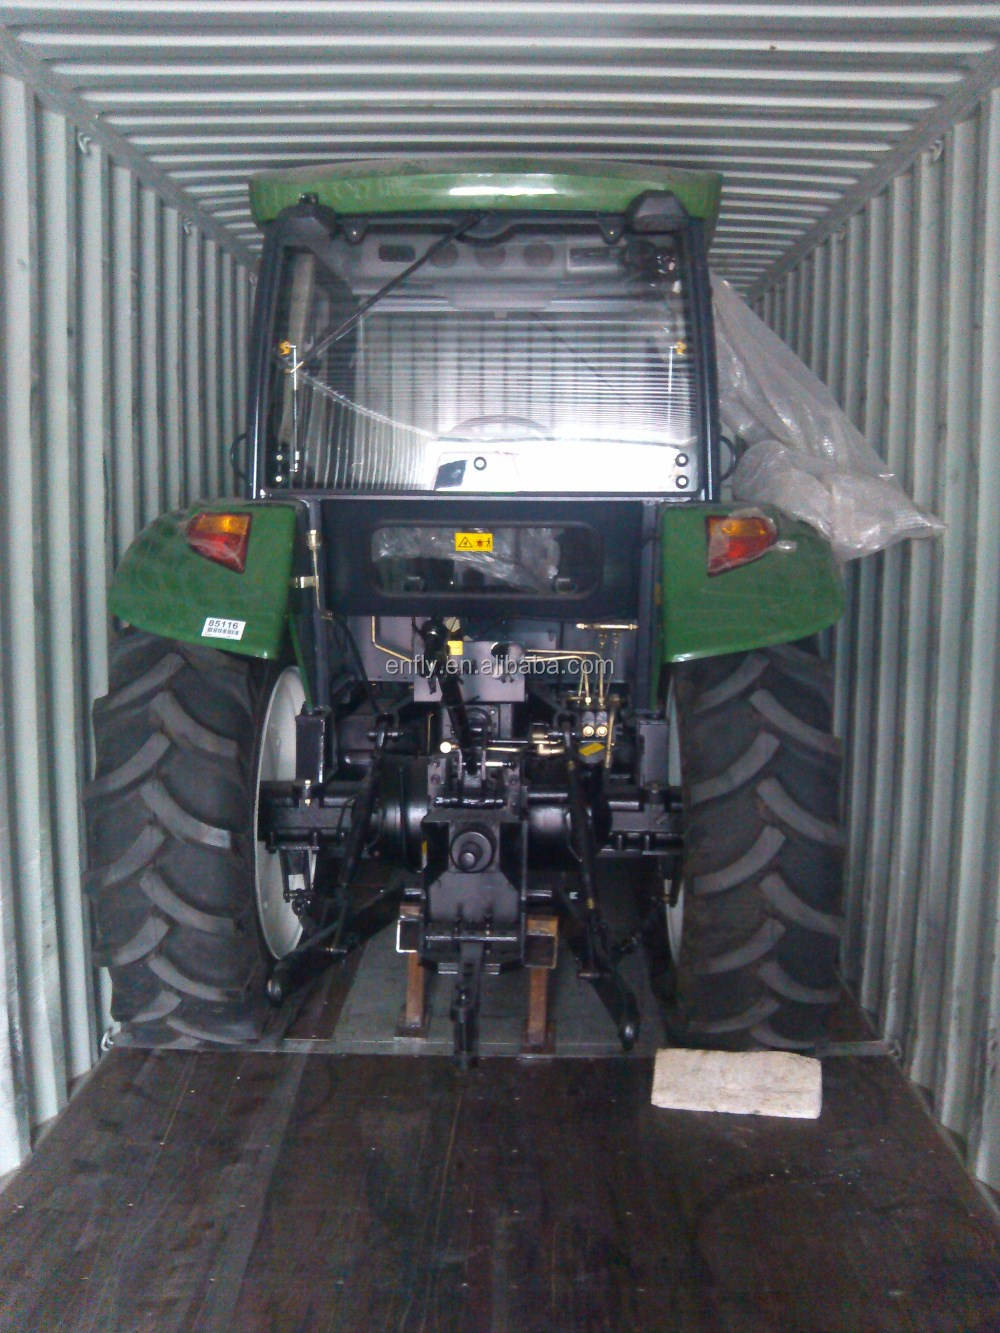 Hot Sale in Malaysia! ENFLY tractor DQ904 90hp 4WD, wheel tractor, farm tractor